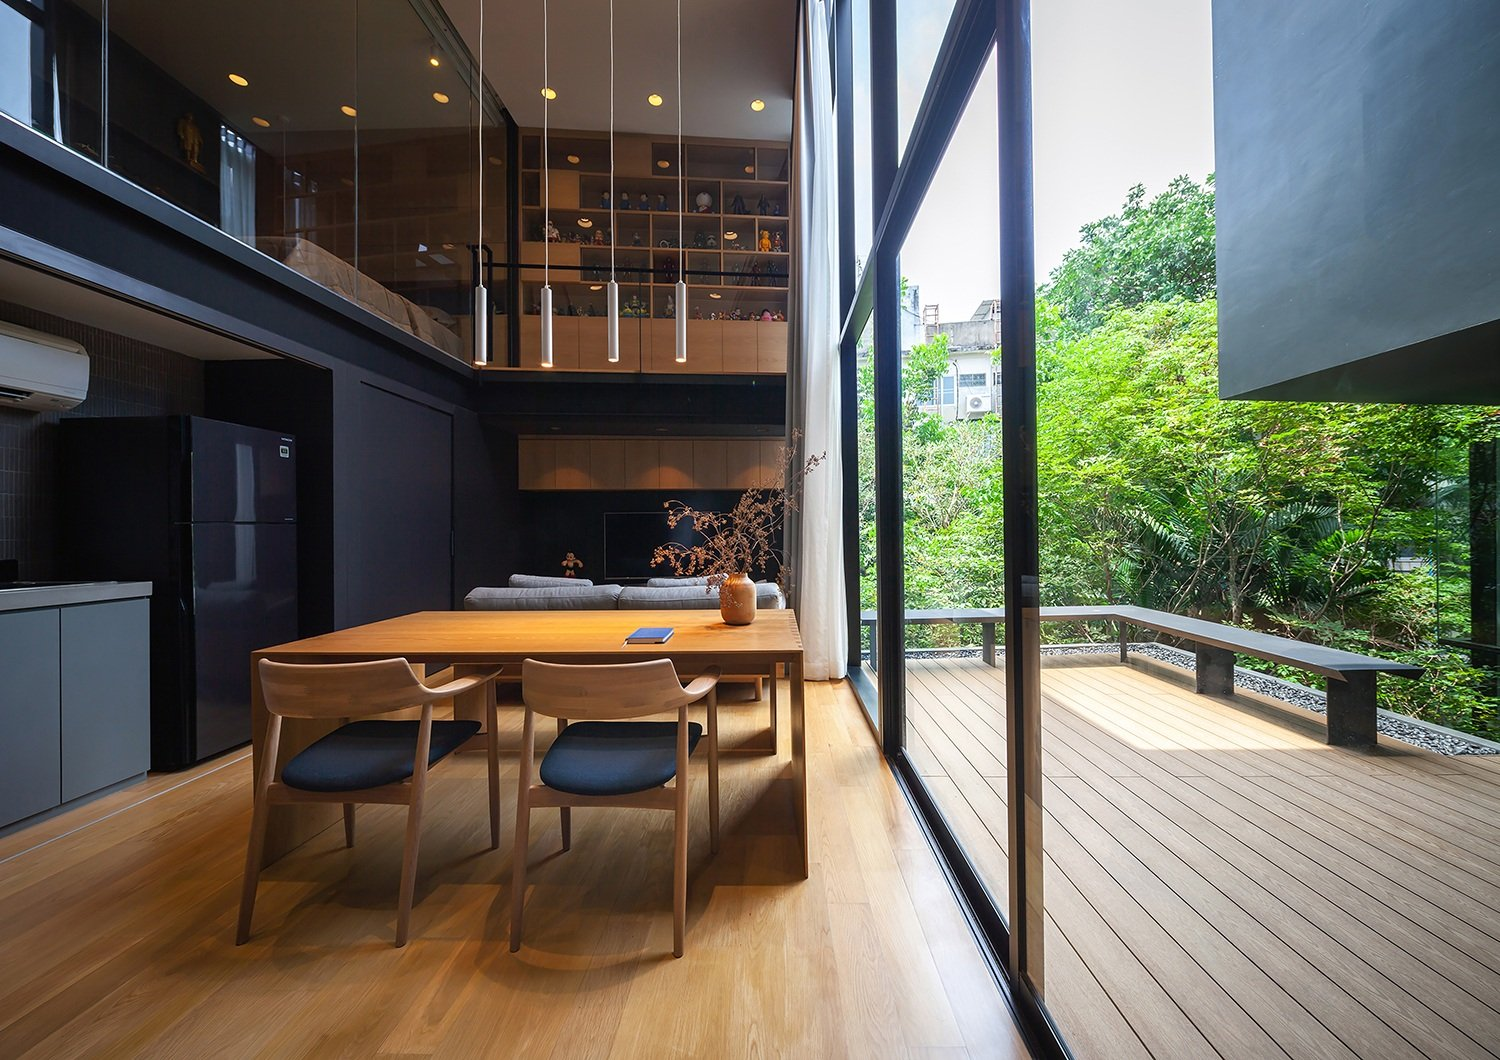 Private residential space Spaceshift